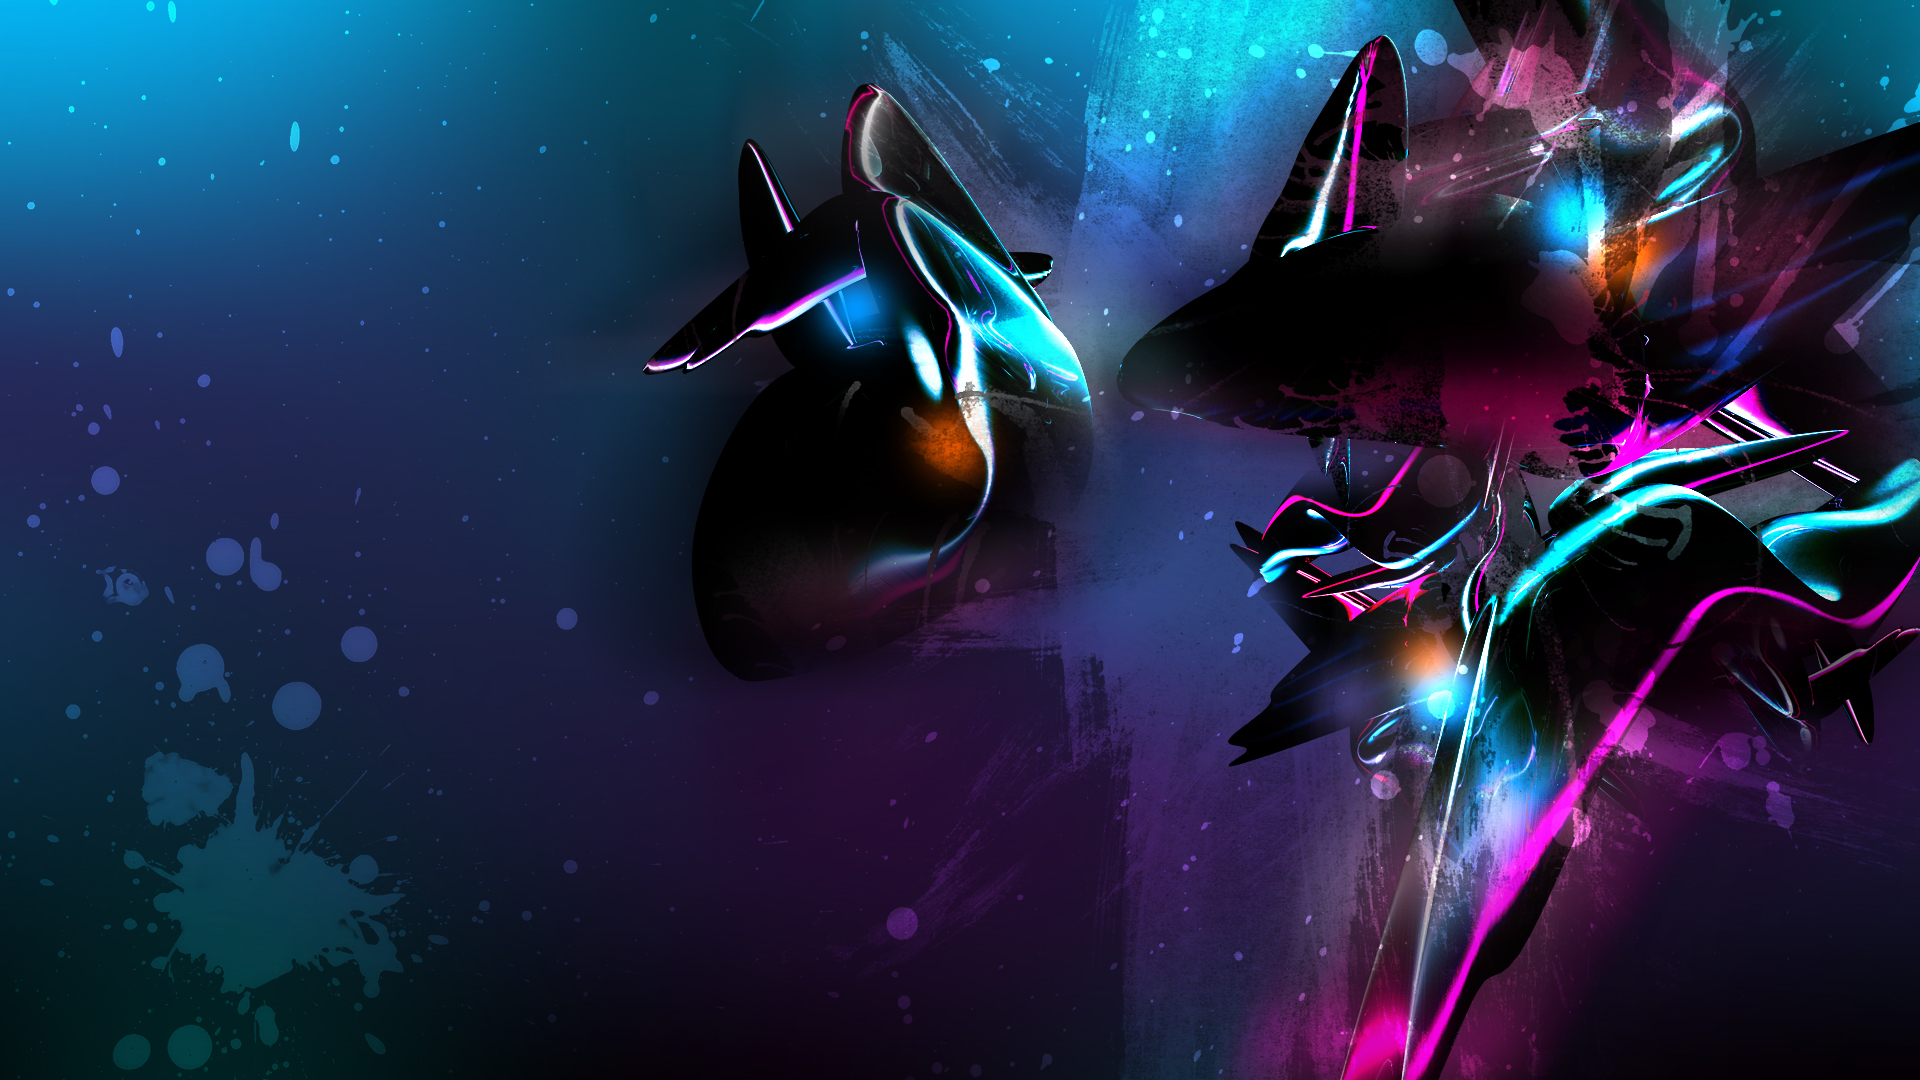 Hd Abstract Anime 720p Wallpaper 1080p 7737 Hd Wallpapers Background 1920x1080